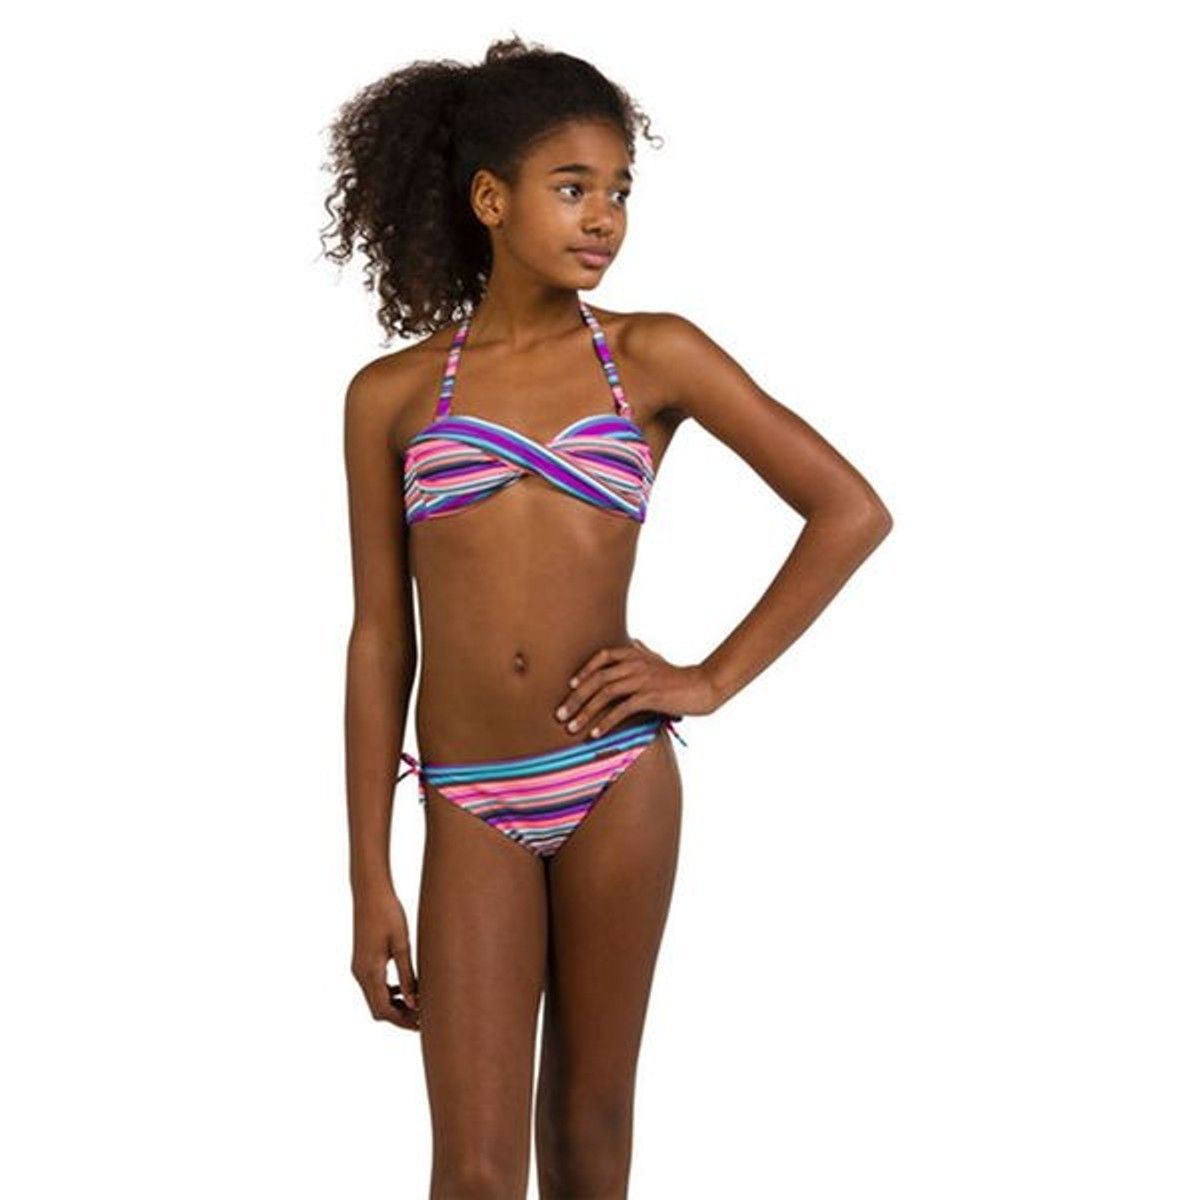 pretty cool free shipping order Maillot De Bain Bandeau En Deux Pièces Orly - Taille : 13/14 ...